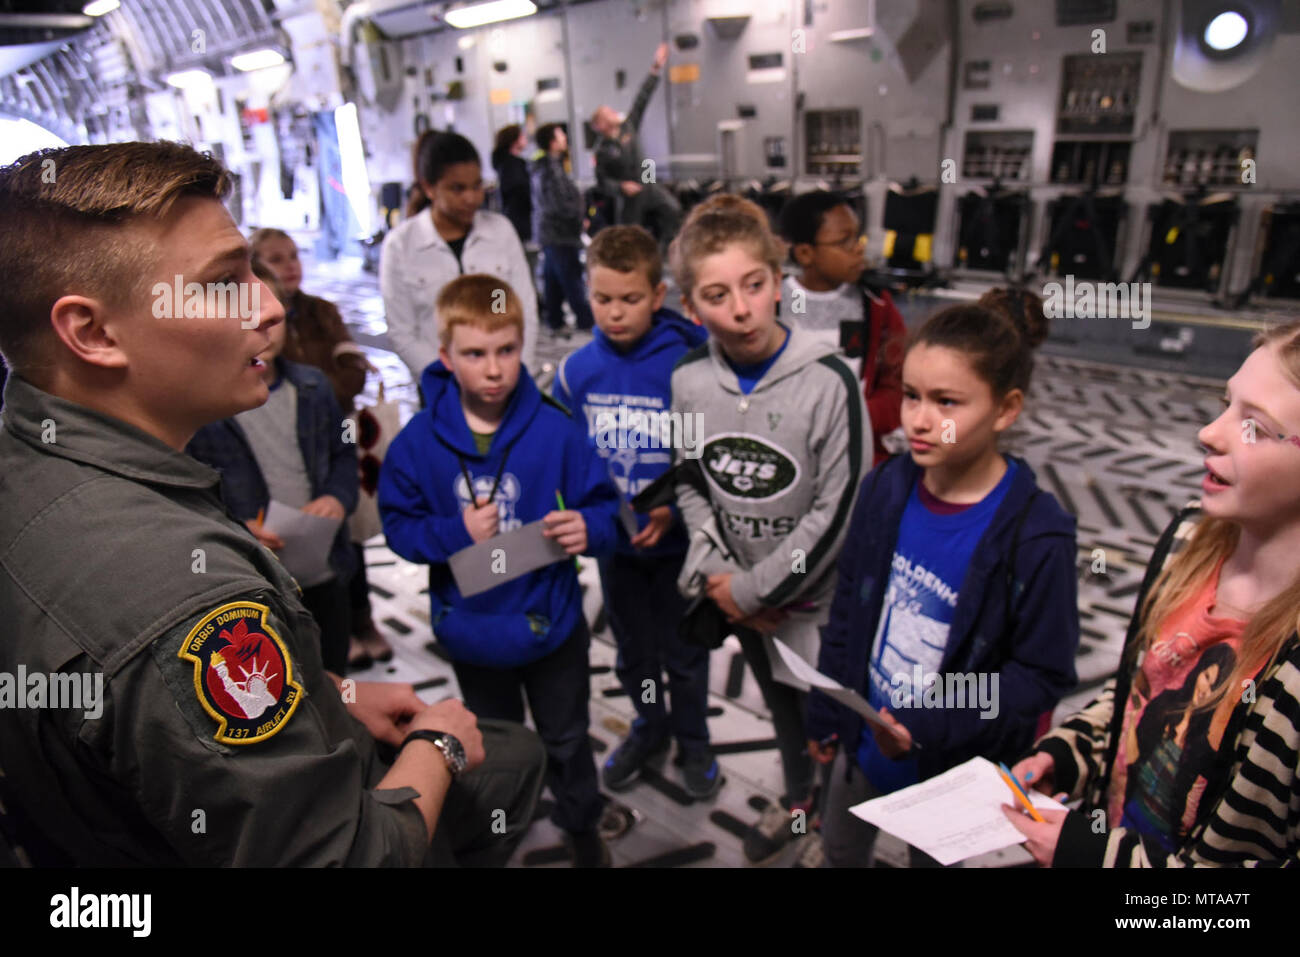 Airmen assigned to the 105th Airlift Wing participated in